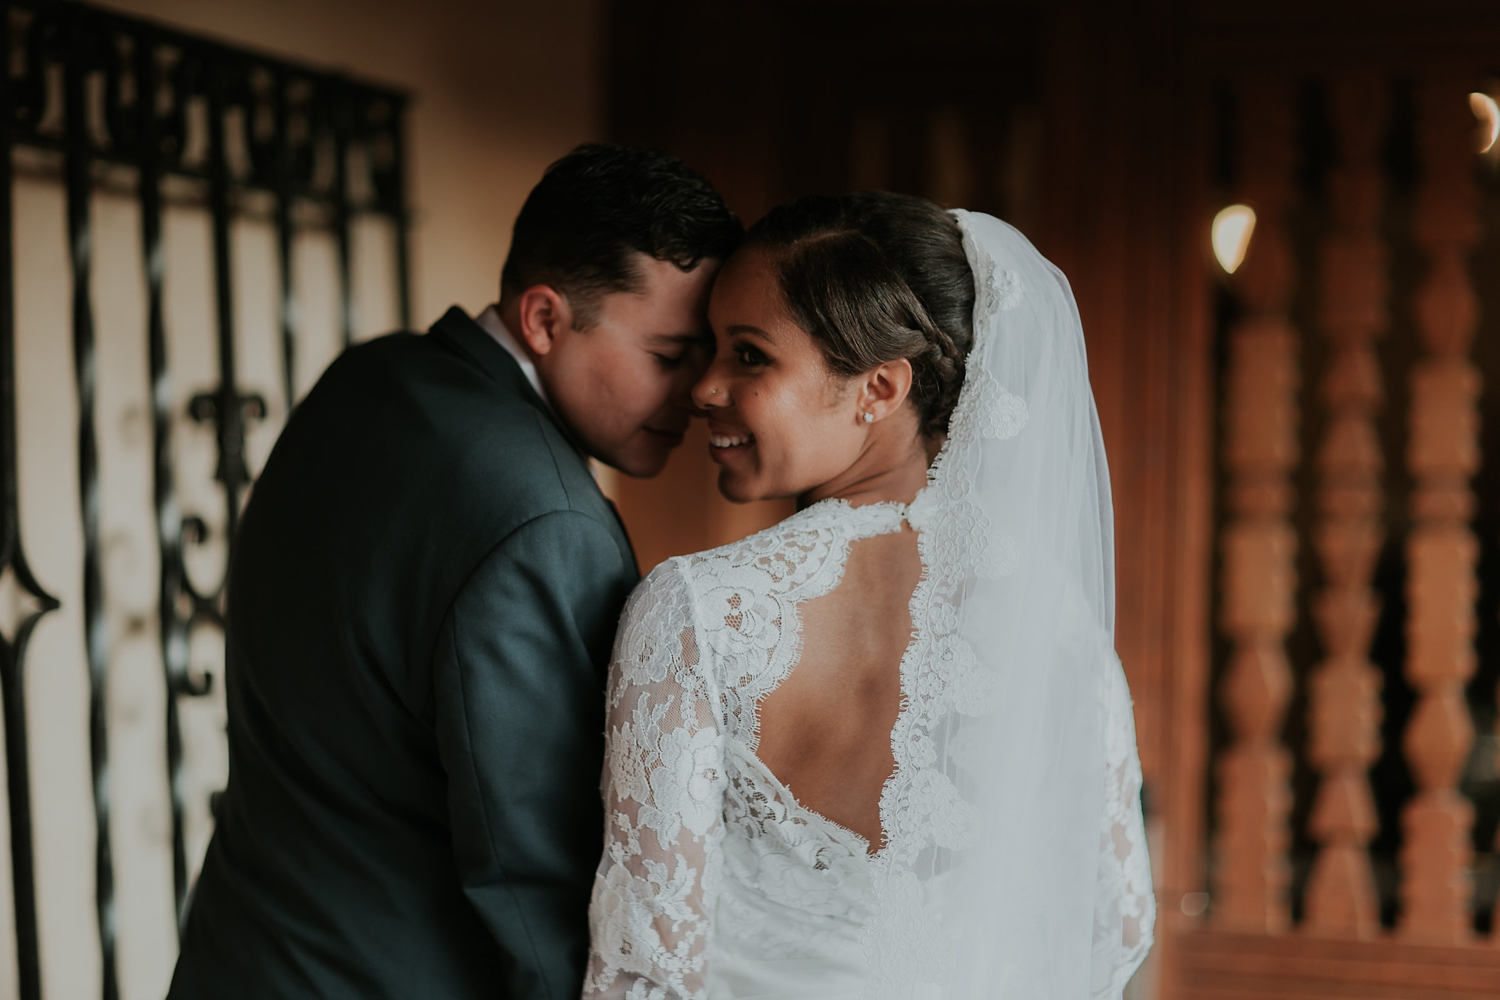 Alicia+lucia+photography+-+albuquerque+wedding+photographer+-+santa+fe+wedding+photography+-+new+mexico+wedding+photographer+-+new+mexico+engagement+-+la+fonda+new+mexico+wedding+-+la+fonda+fall+wedding_0064.jpg